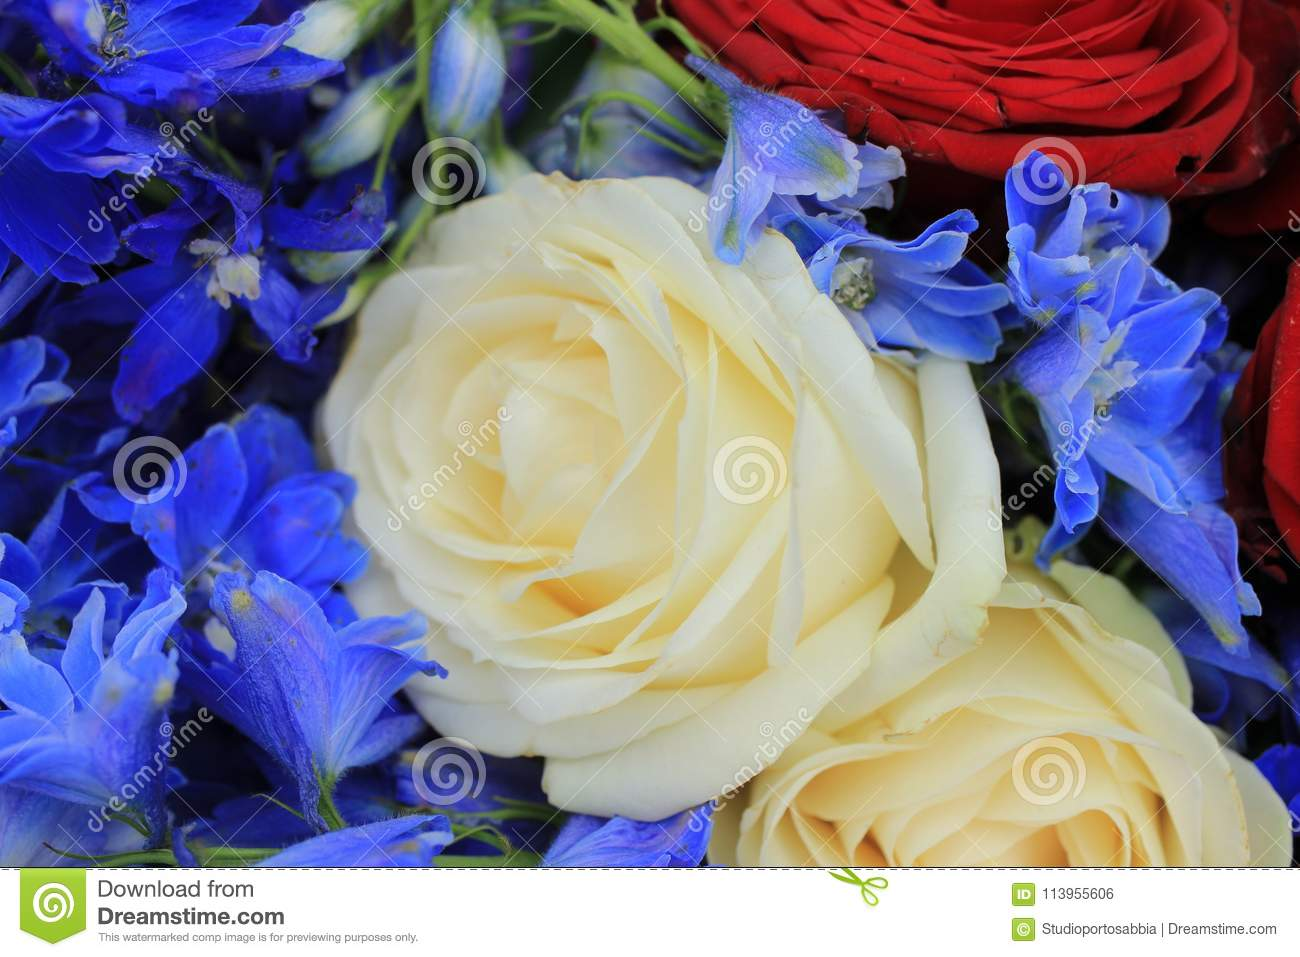 Red white and blue wedding flowers stock photo image of blue download red white and blue wedding flowers stock photo image of blue bouquet mightylinksfo